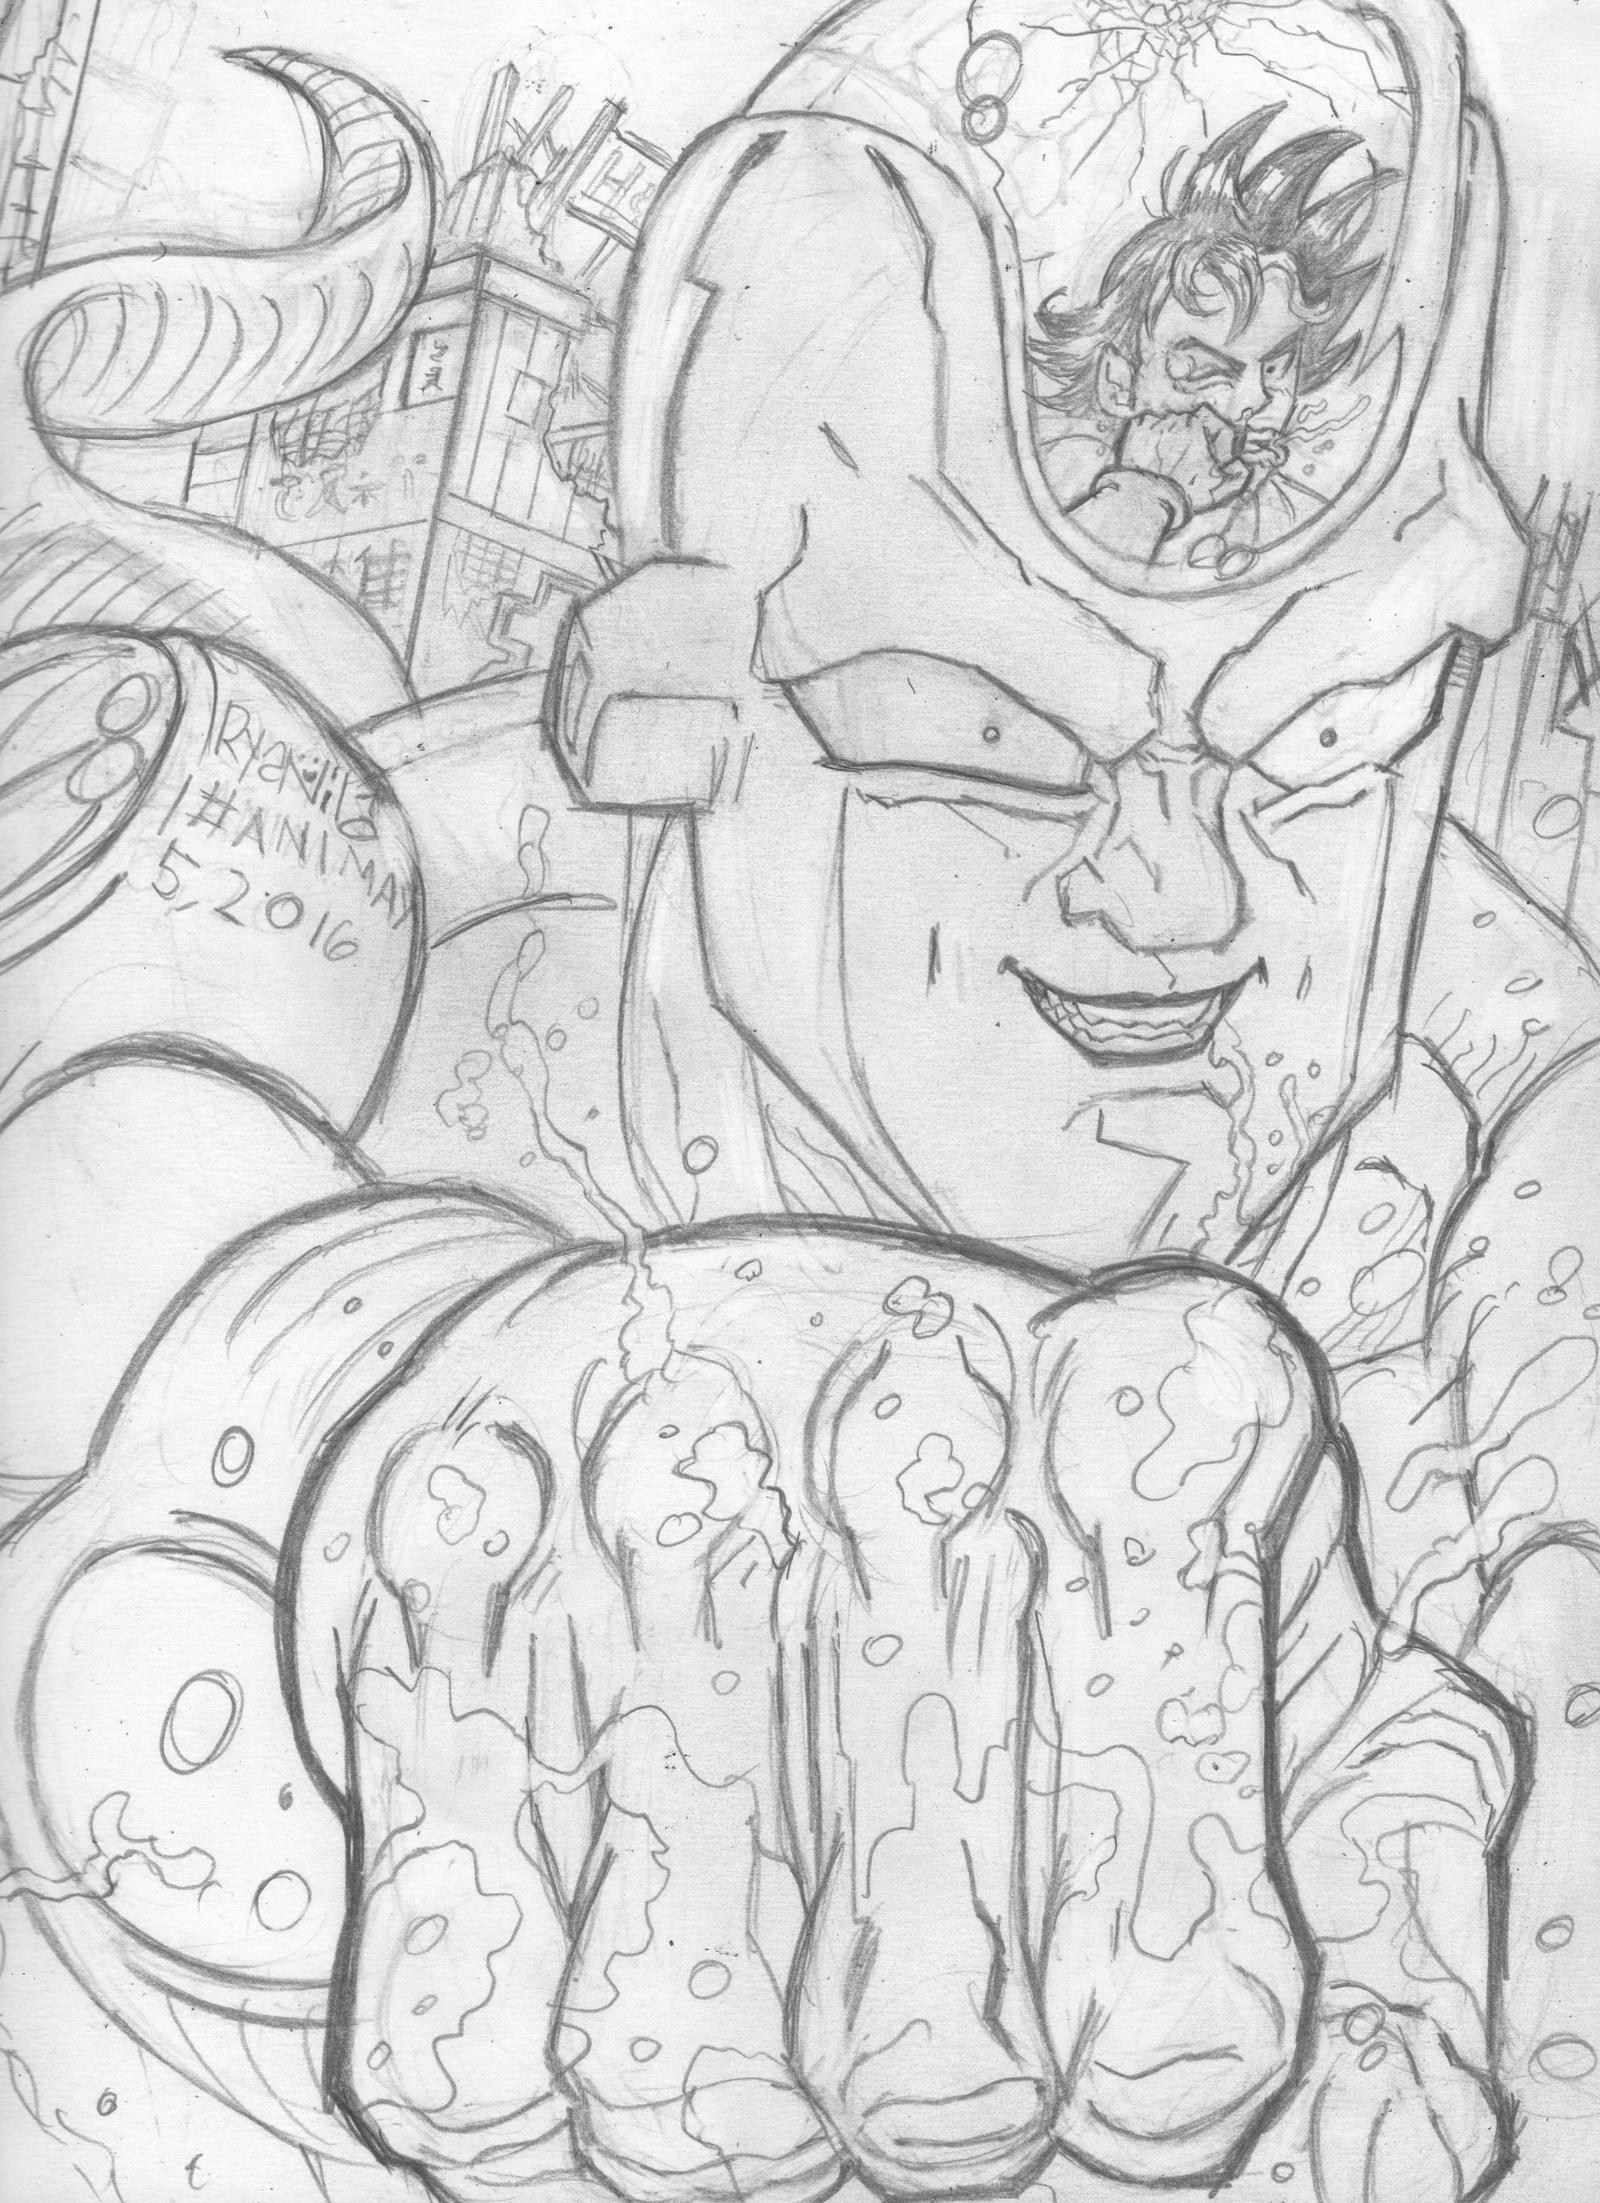 Akira Toriyama S Frieza From Dragon Ball Z By Ryanv80 On Deviantart